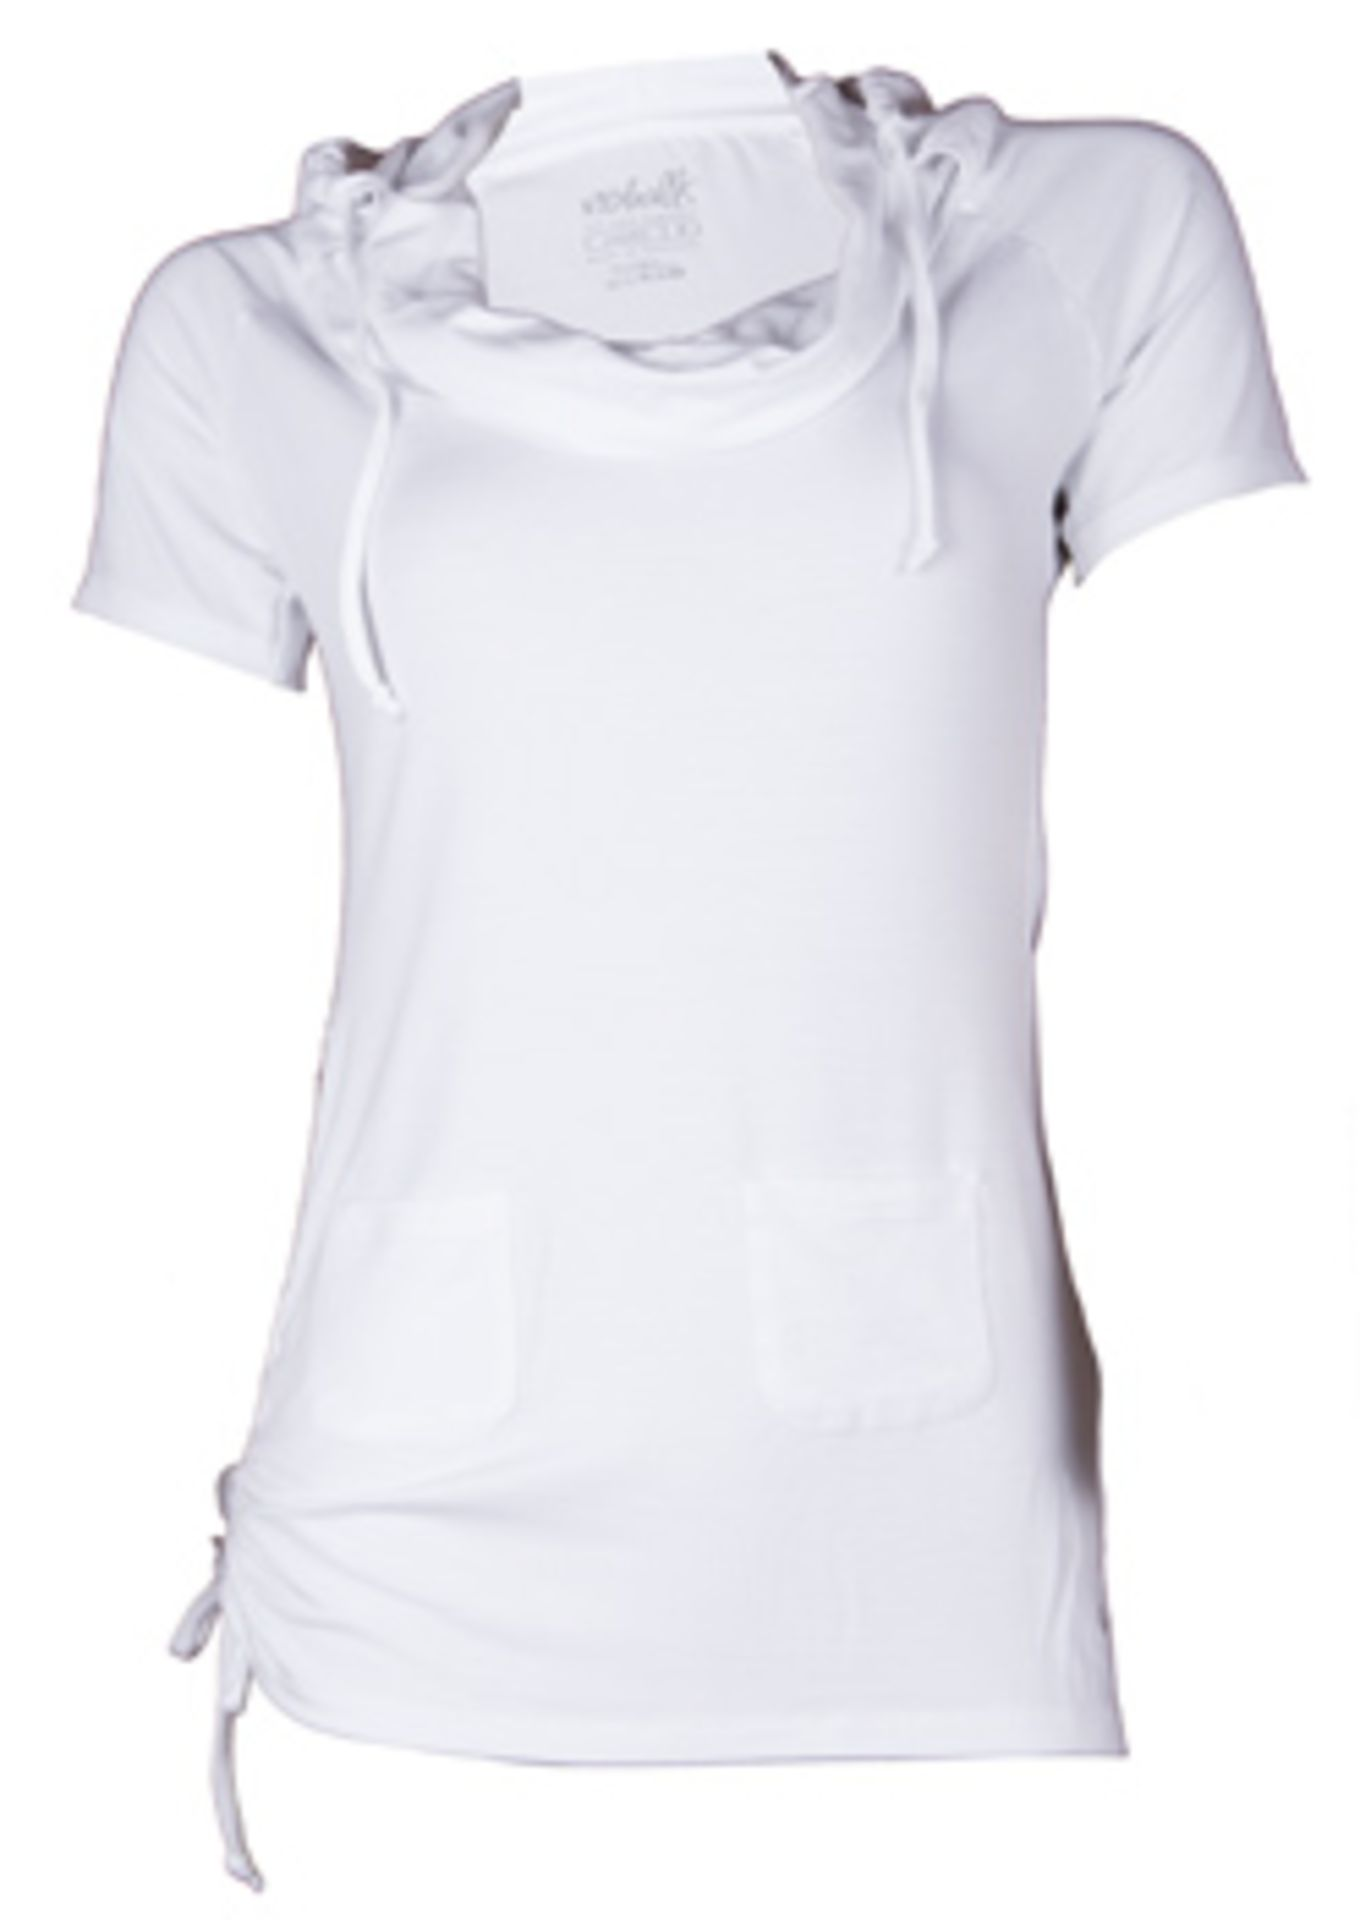 2 x Bamboo Hooded Short Sleeved Tops | XS - Image 2 of 2